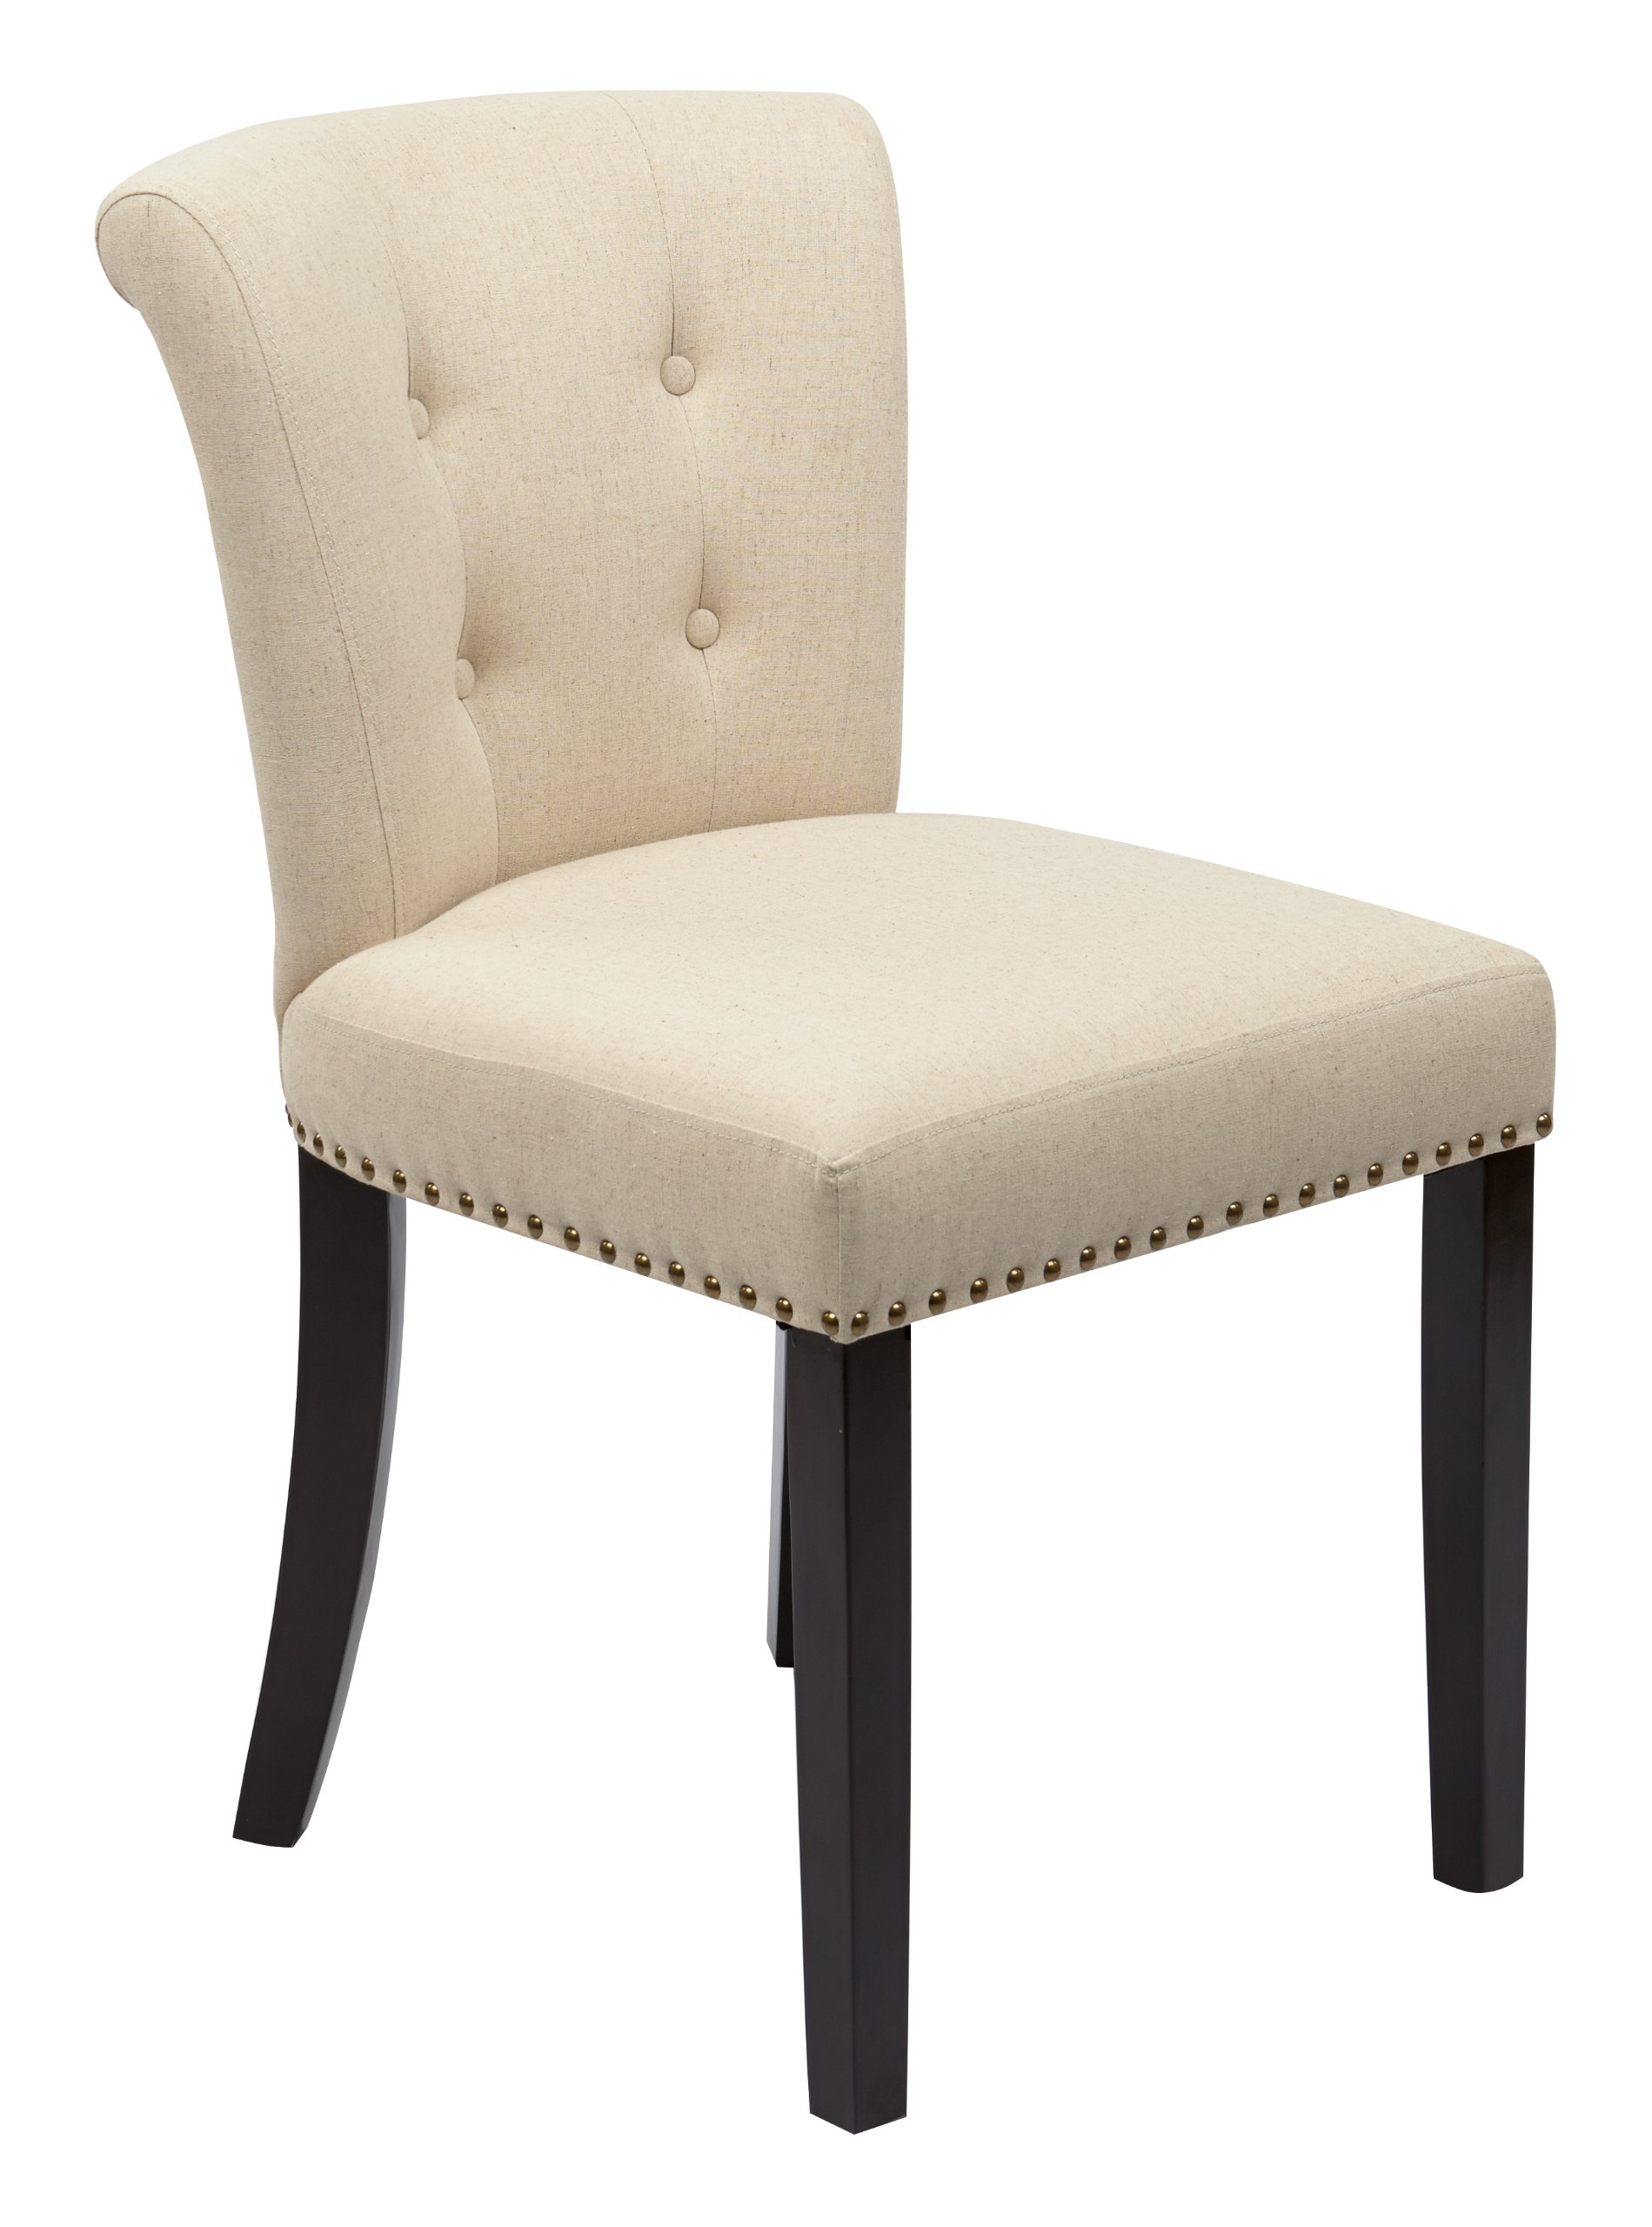 AVE SIX Kendal Tufted and Inner Spring Chair with Nailhead Detail and Solid Wood Legs, Linen Fabric